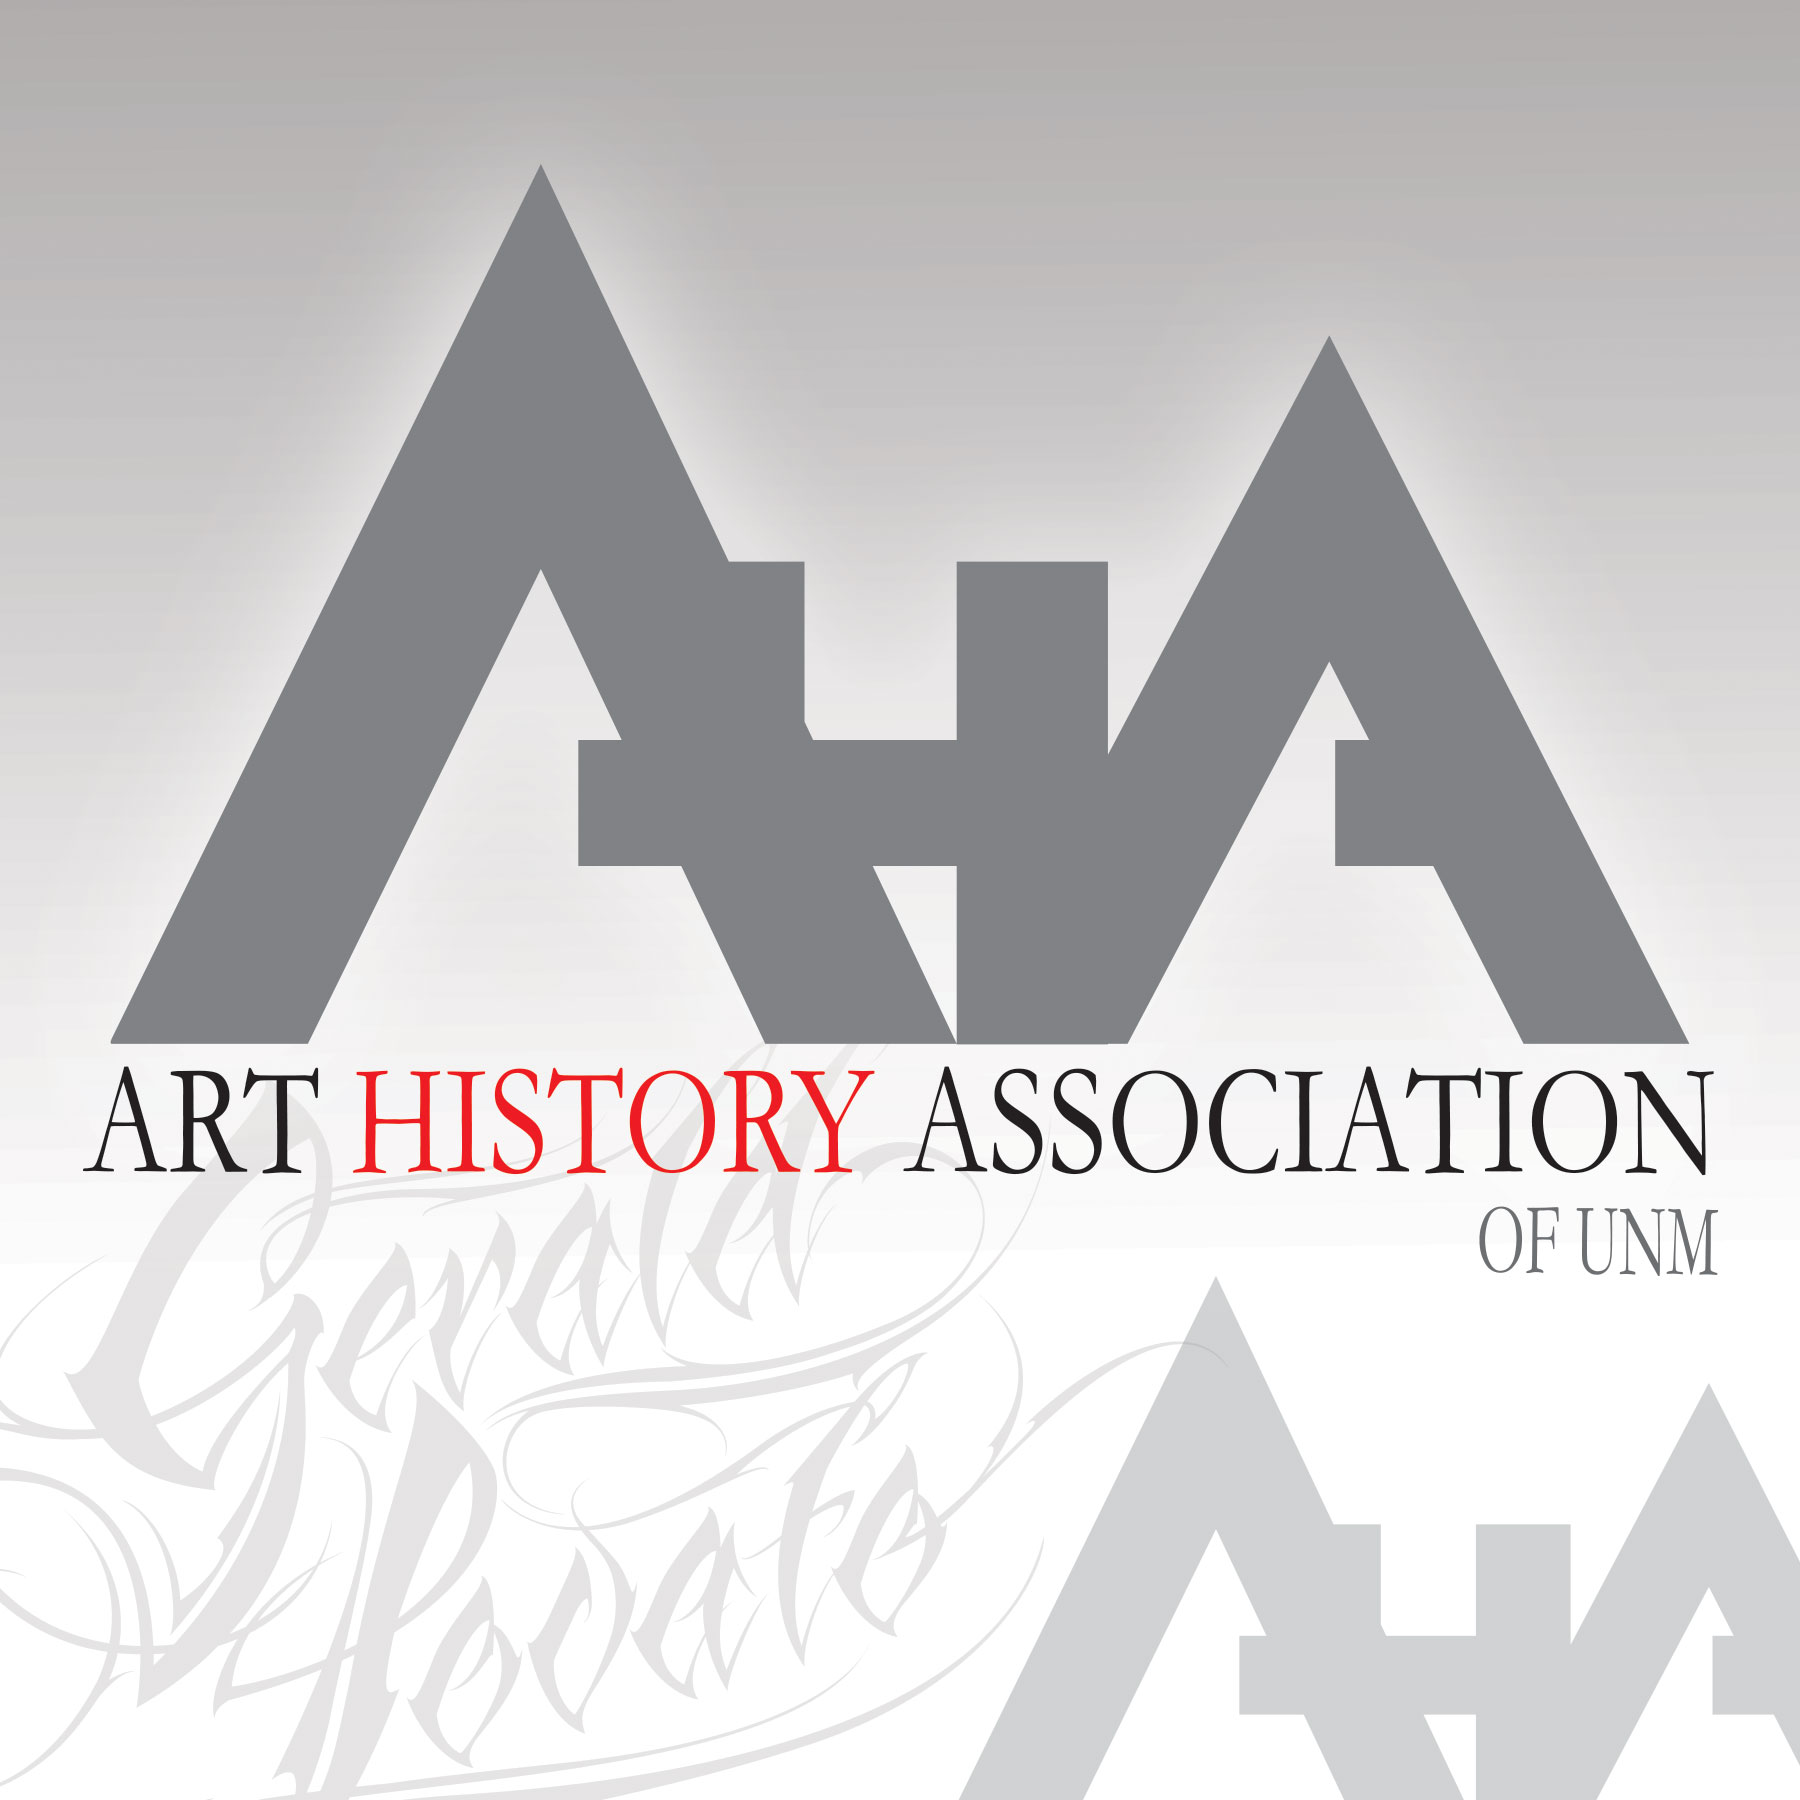 UNM_ART_HISTORY_ASSOCIATION_LOGO